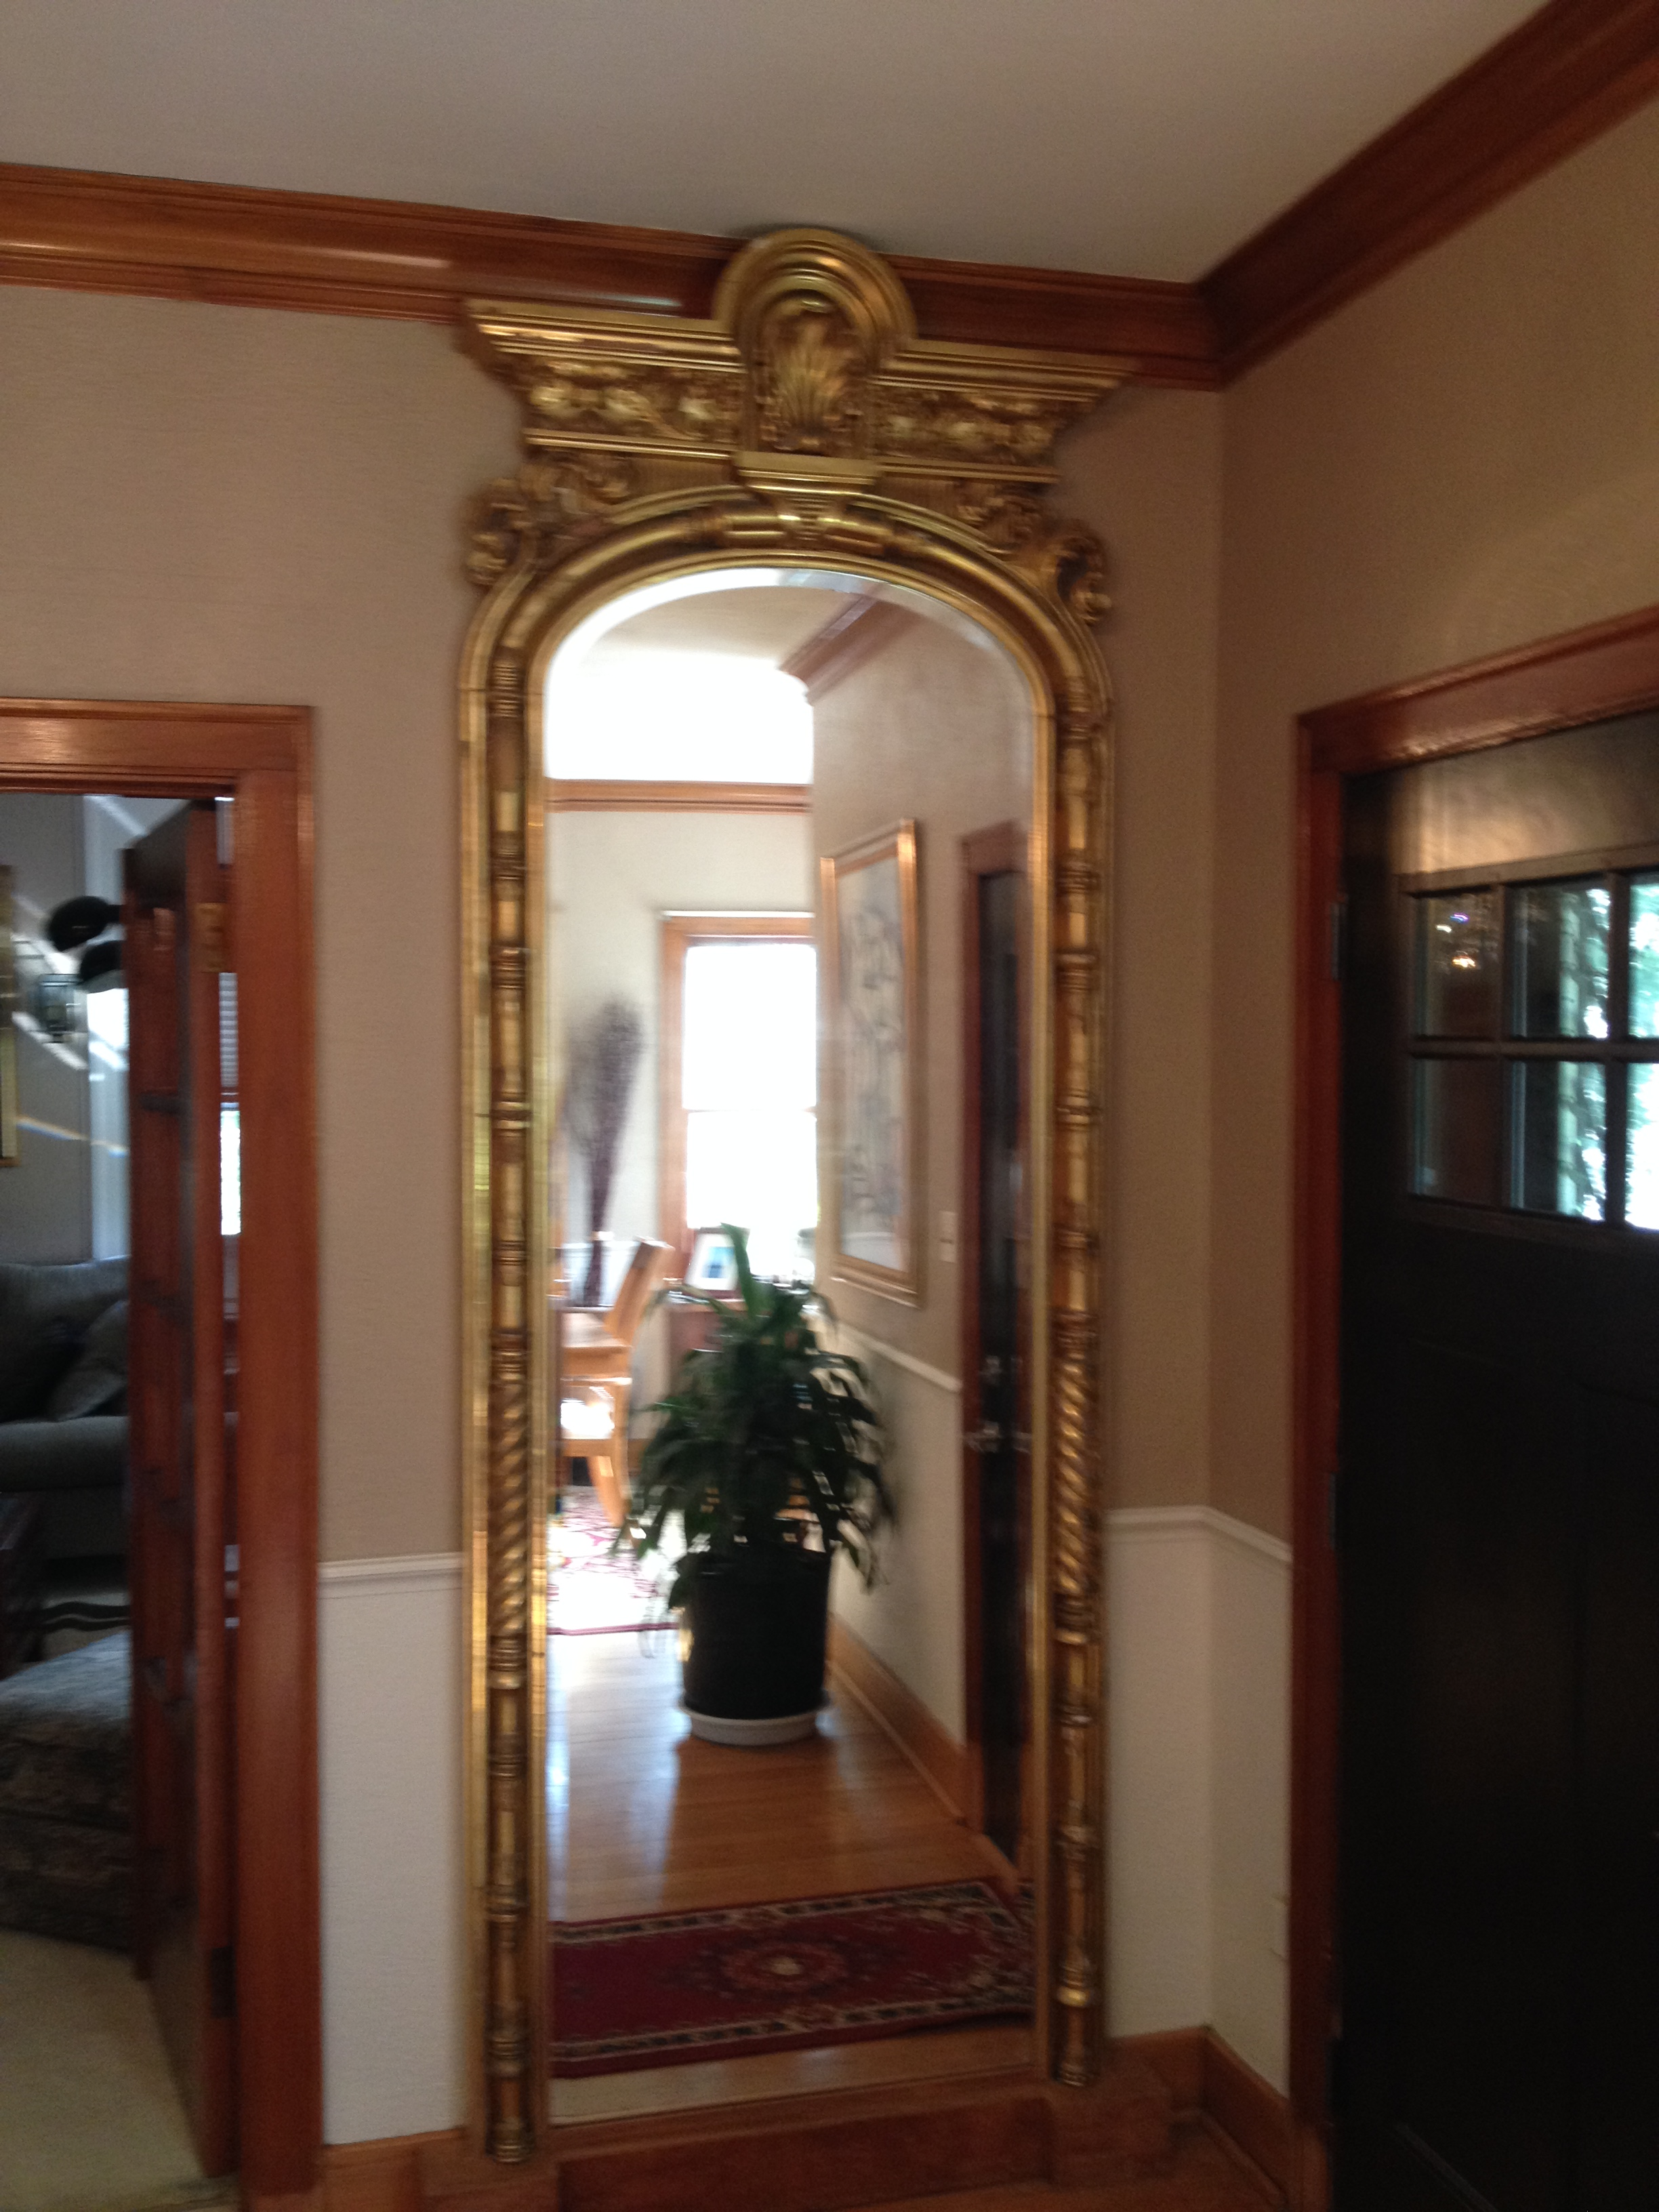 Smuggled To The U S After Wwii From Austria This Pair Of 10ft X 3ft Floor Mirrors Is Hand Crafted Fine Wood And Plaster With 18k Gold Inlay